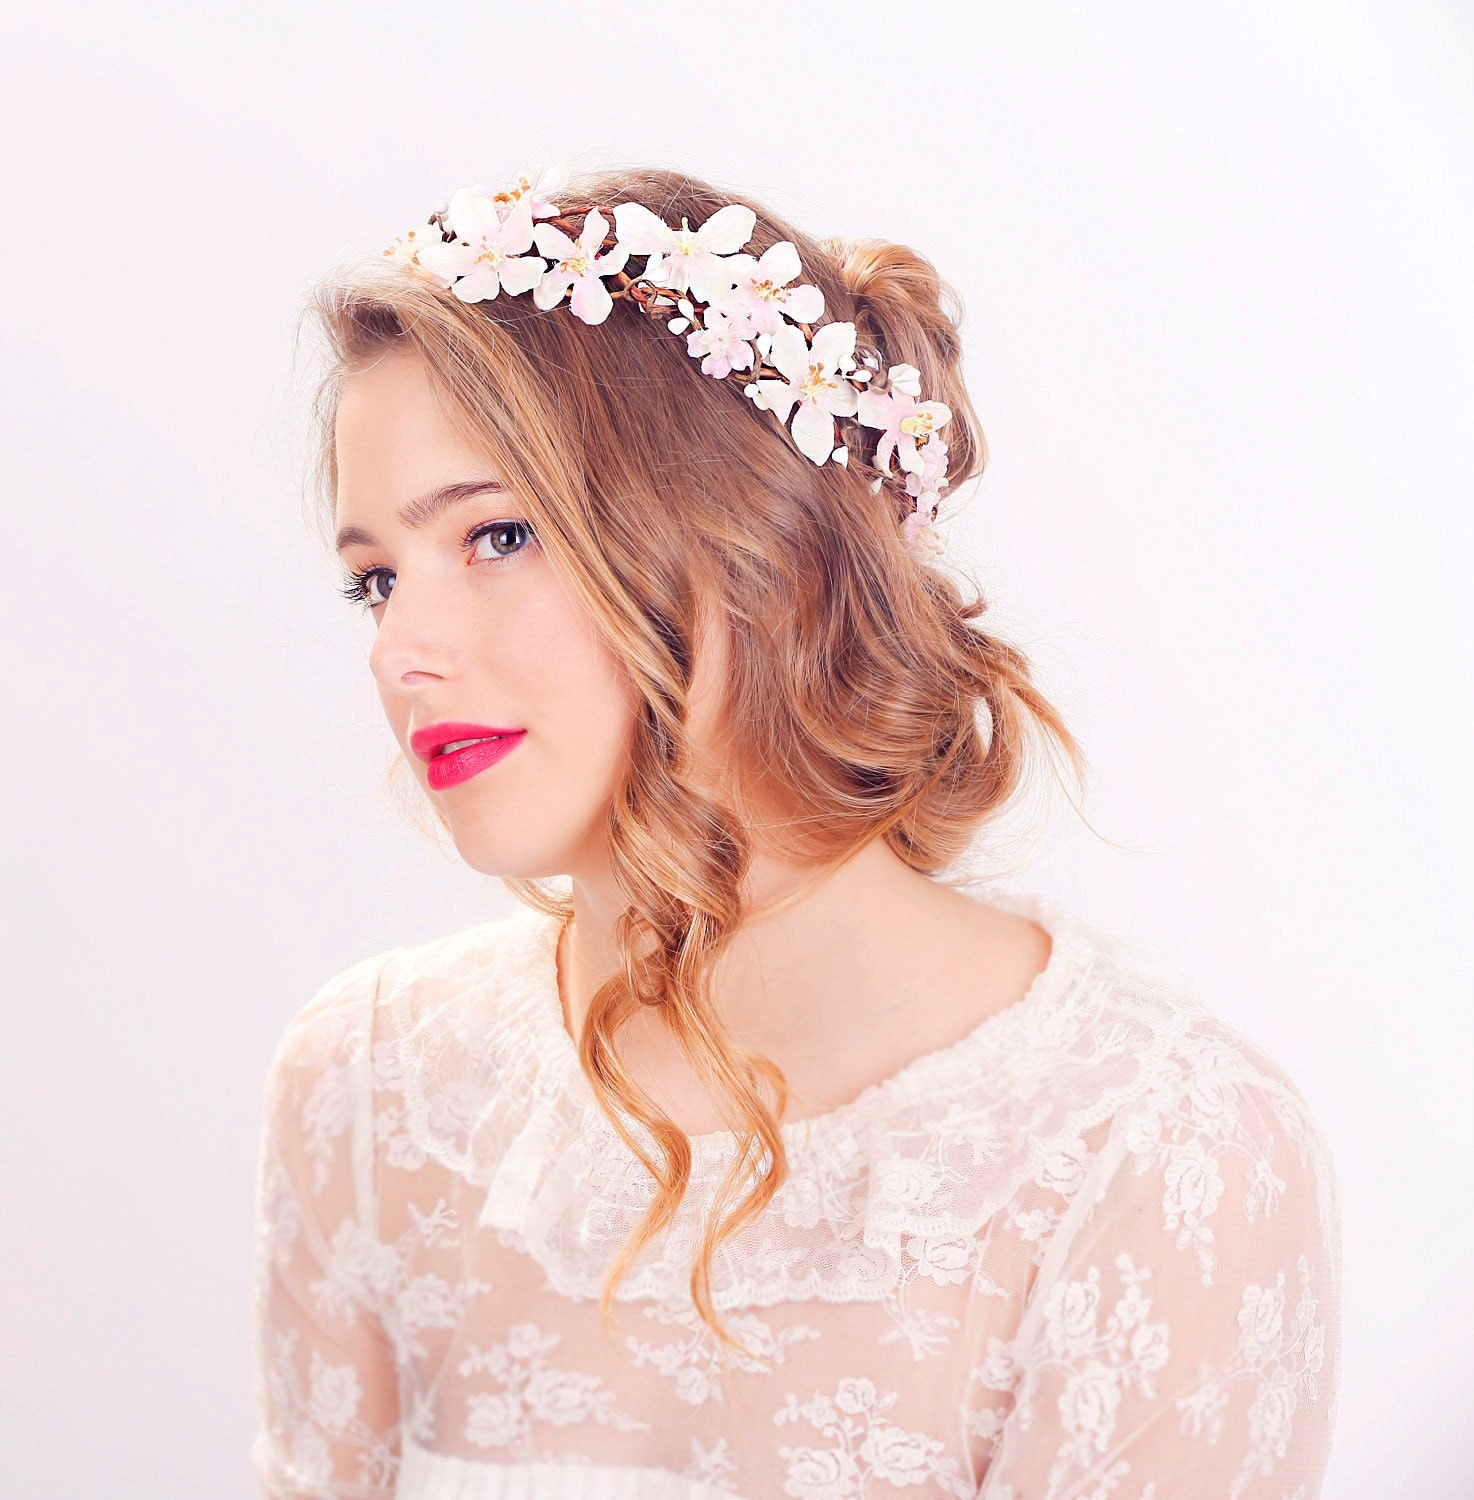 cherry blossom flower crown wedding headpiece flower crown